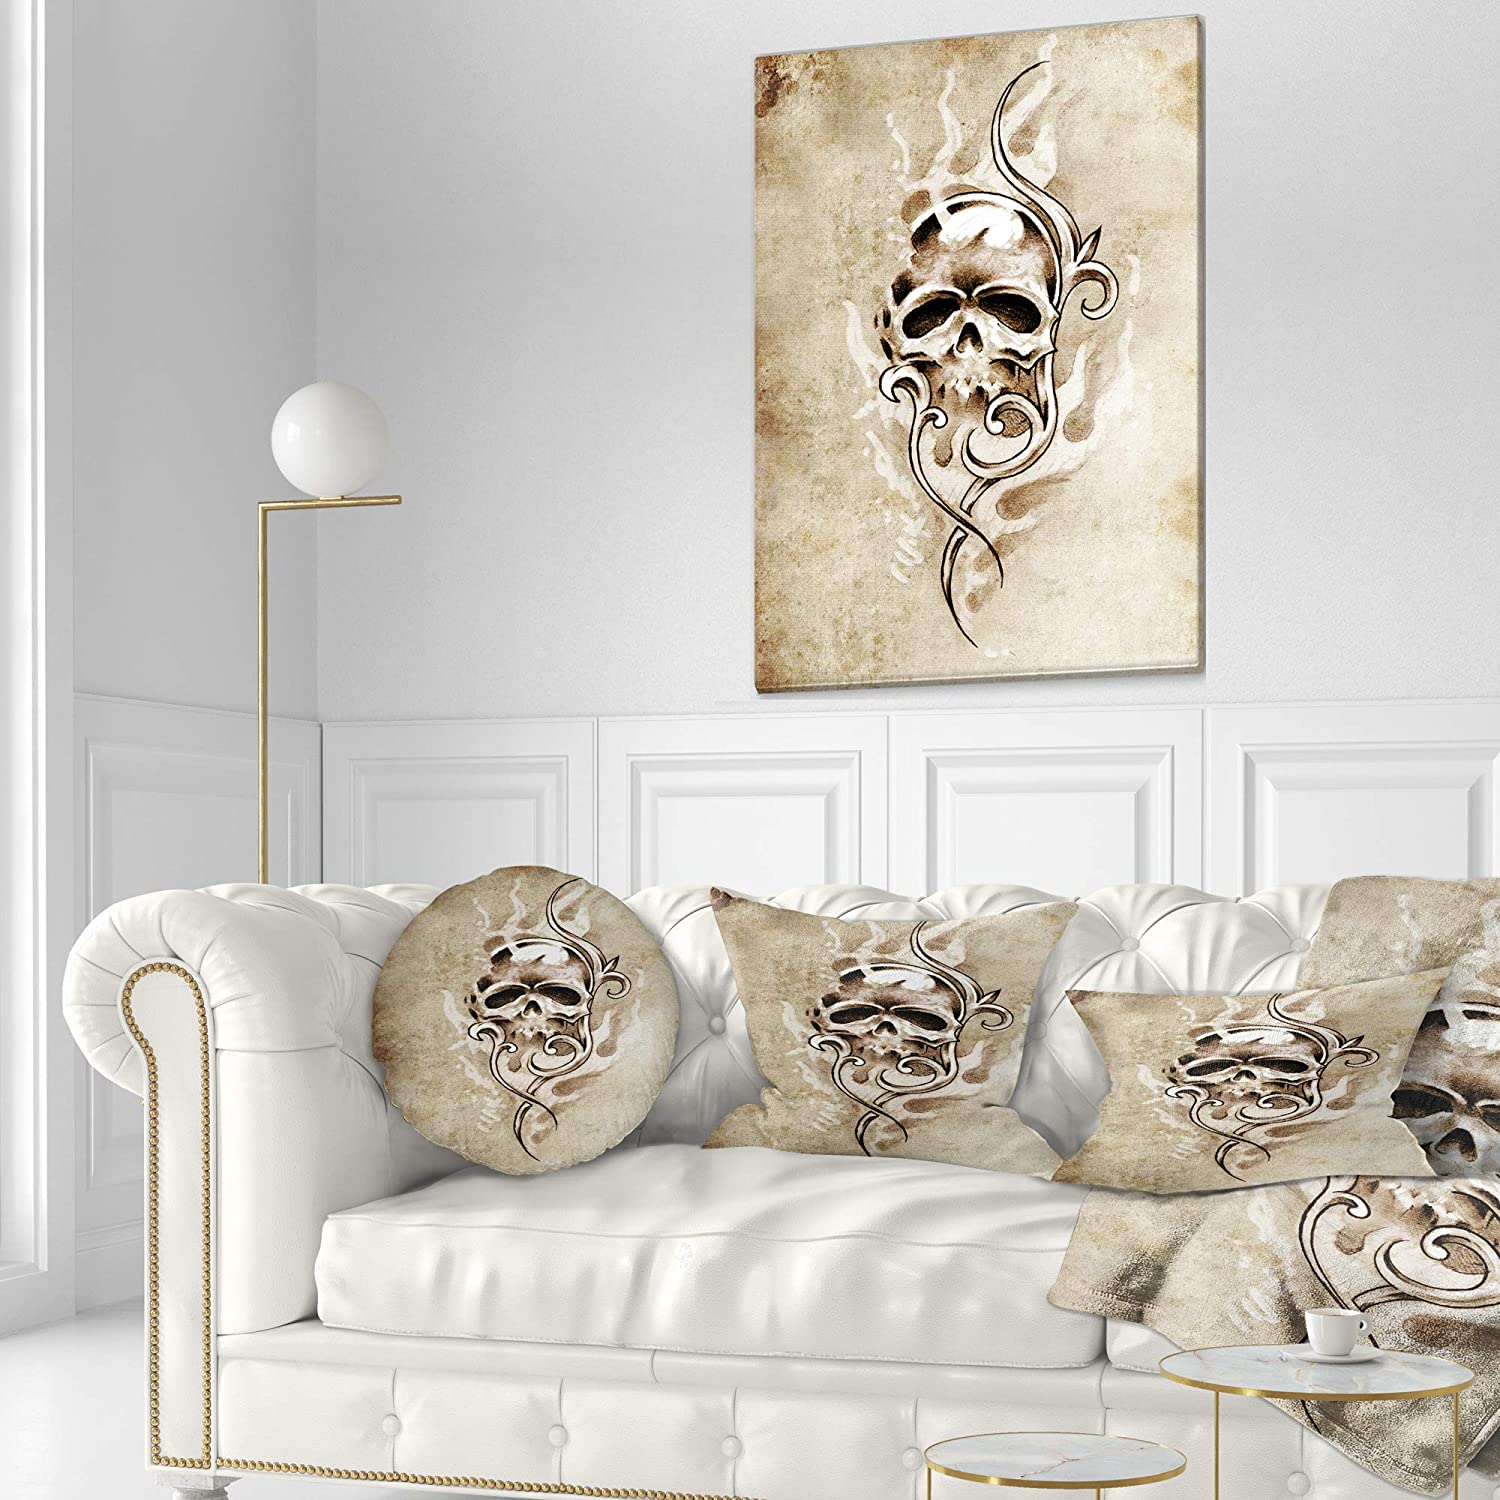 Sofa Throw Pillow 20 Designart CU7901-20-20-C Vintage Style Skull Devil Tattoo Abstract Round Cushion Cover for Living Room